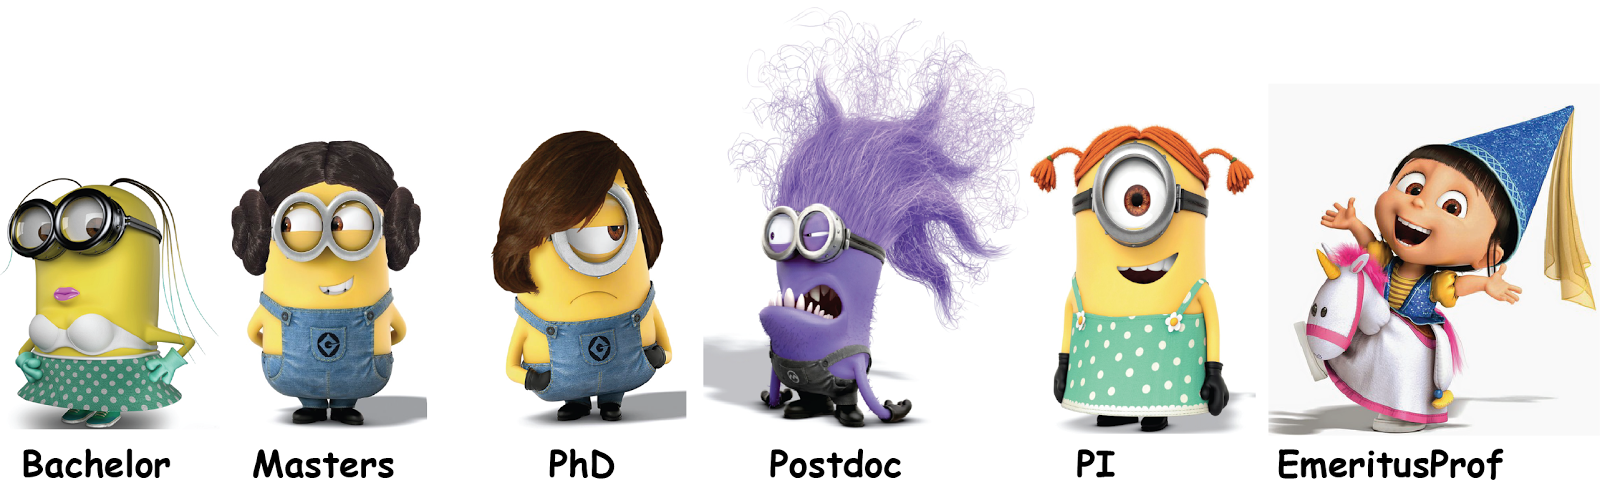 Female Academic Minions